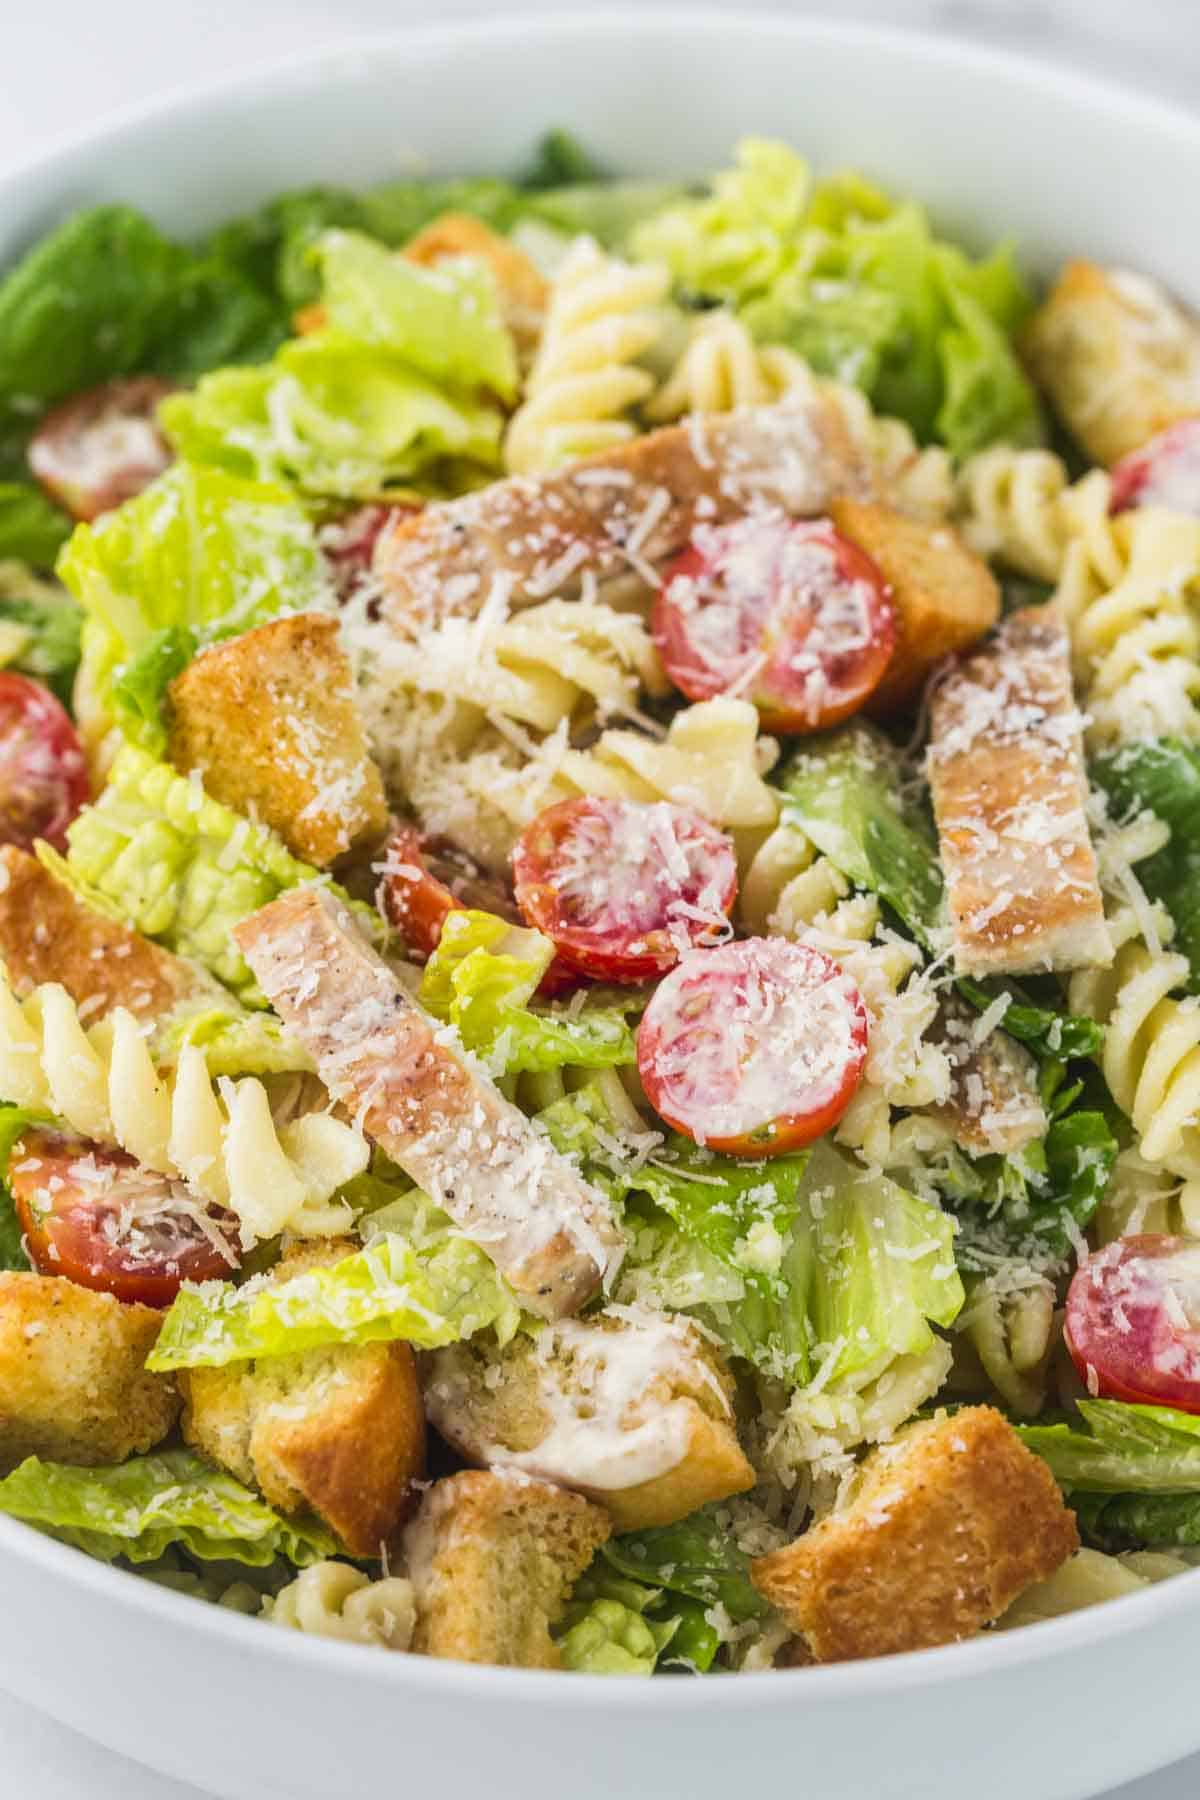 Tossed Caesar pasta salad in a large white bowl